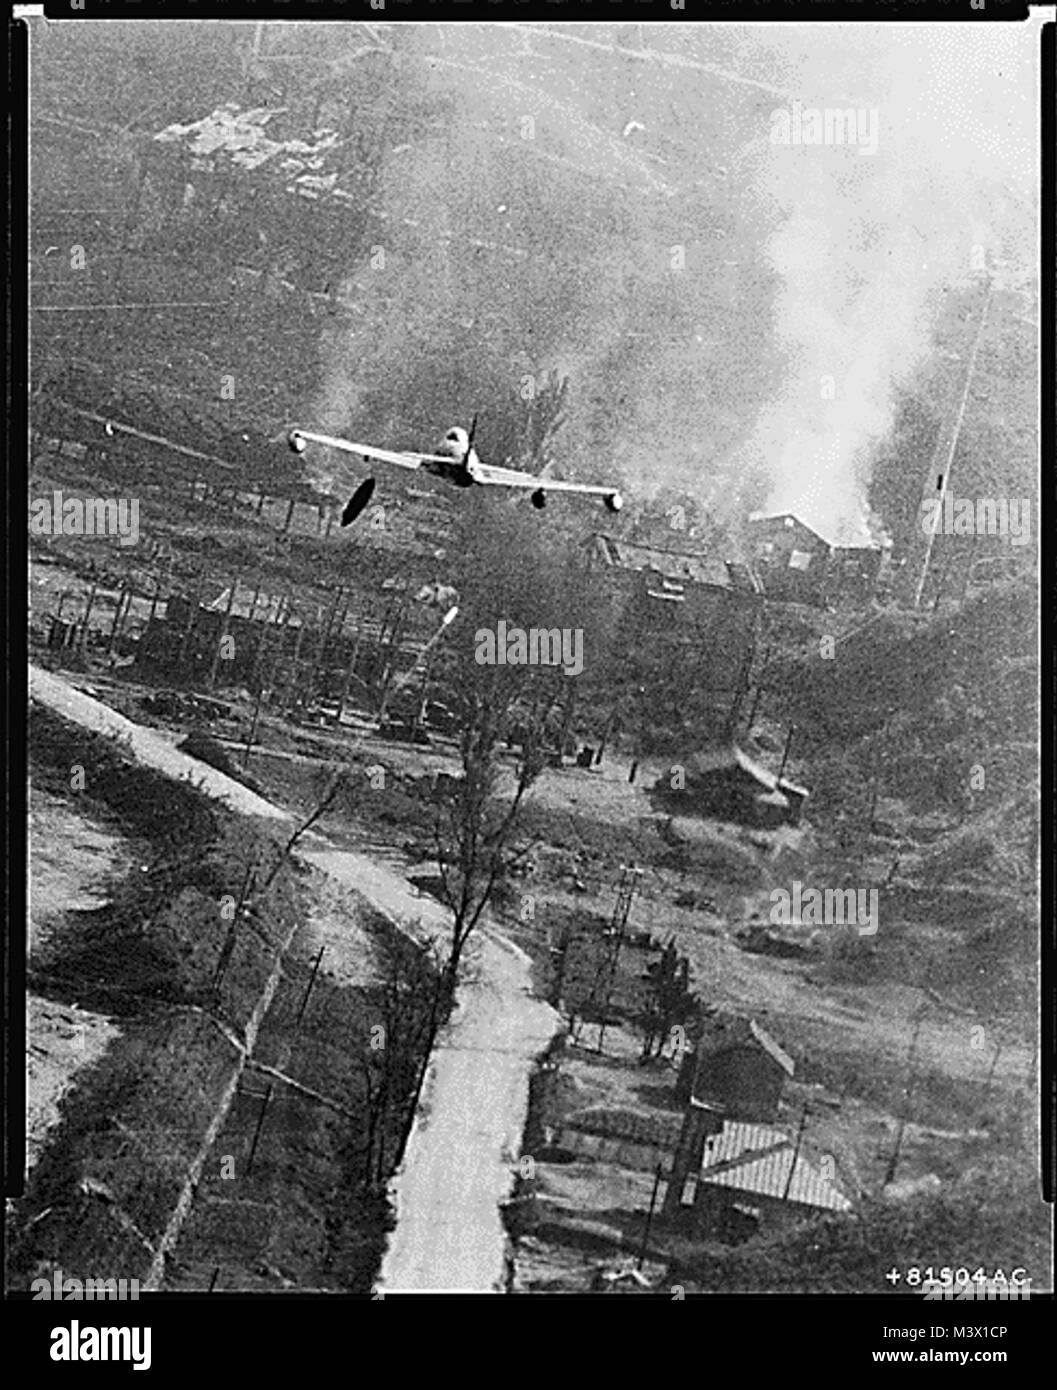 Korean War Pictures - An F-80 Dropping Napalm Bombs at Suan  This dramatic photo of a U.S. Air Force F-80 Shooting - Stock Image